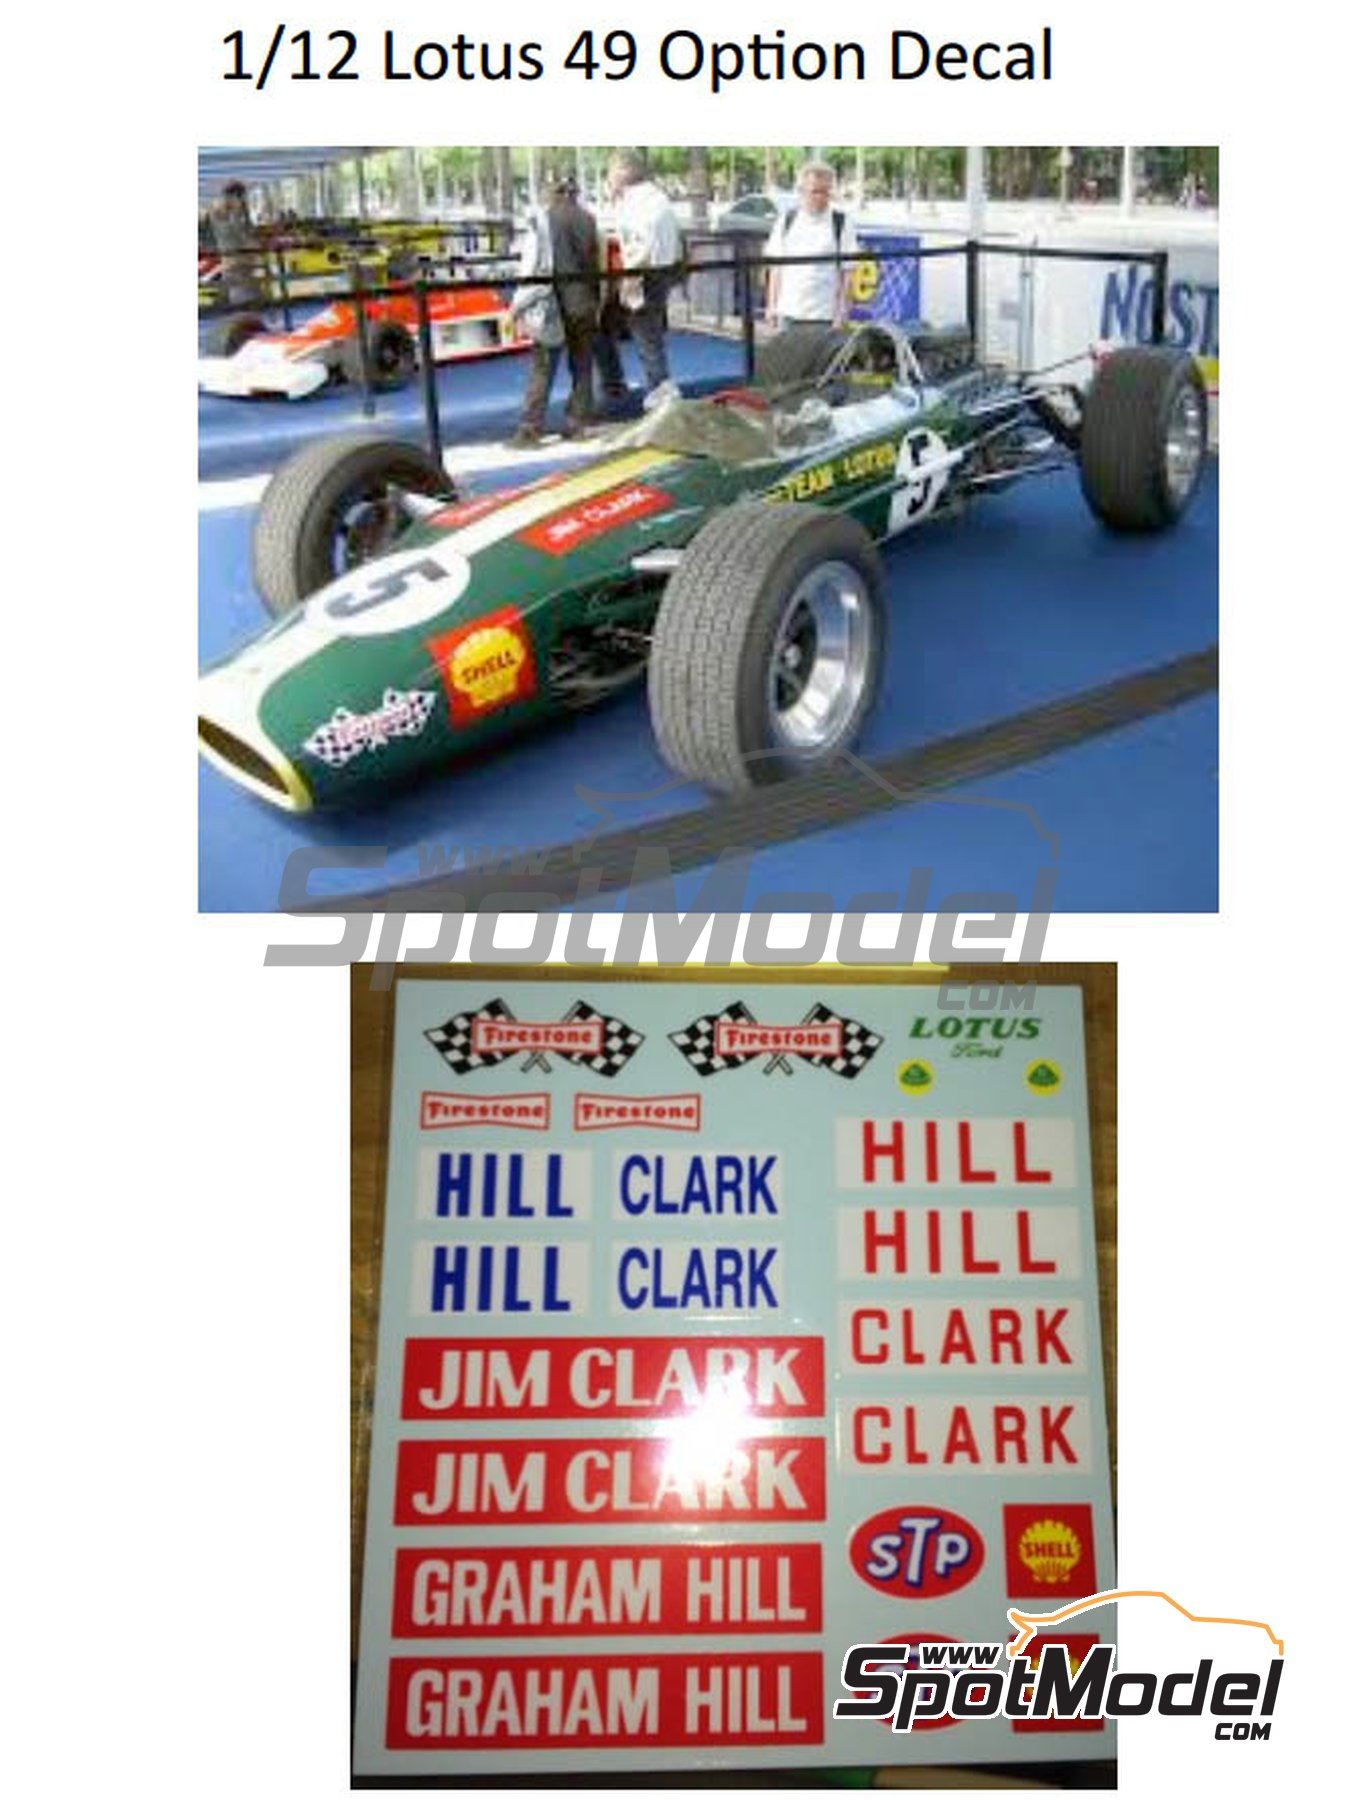 Lotus Ford Type 49 Firestone - FIA Formula 1 World Championship 1967 and 1968 | Marking / livery in 1/12 scale manufactured by Decalpool (ref.DP126) image